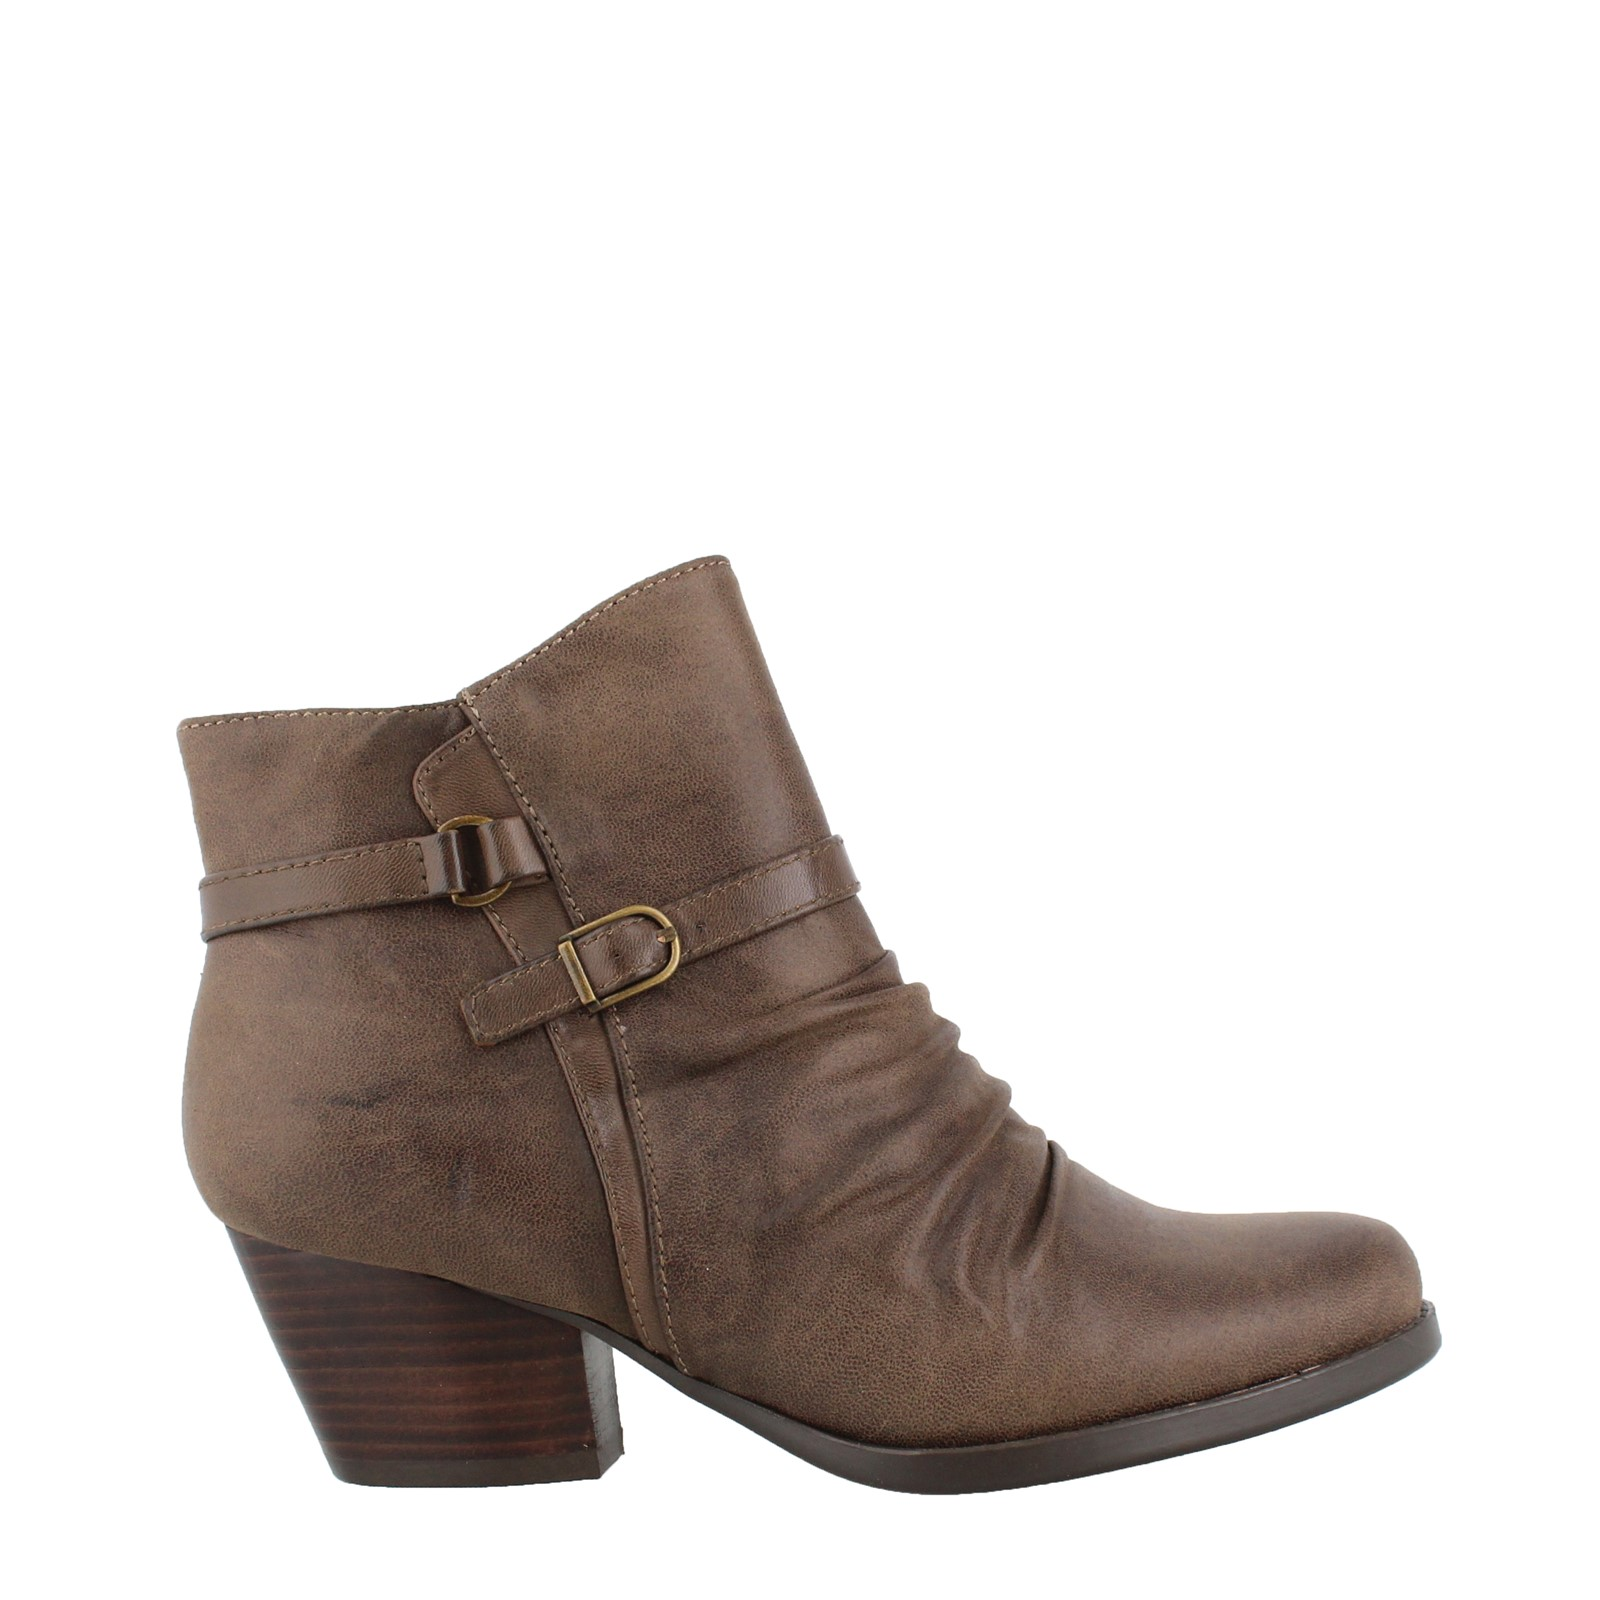 Women's Bare Traps, Ricarda Ankle Boots